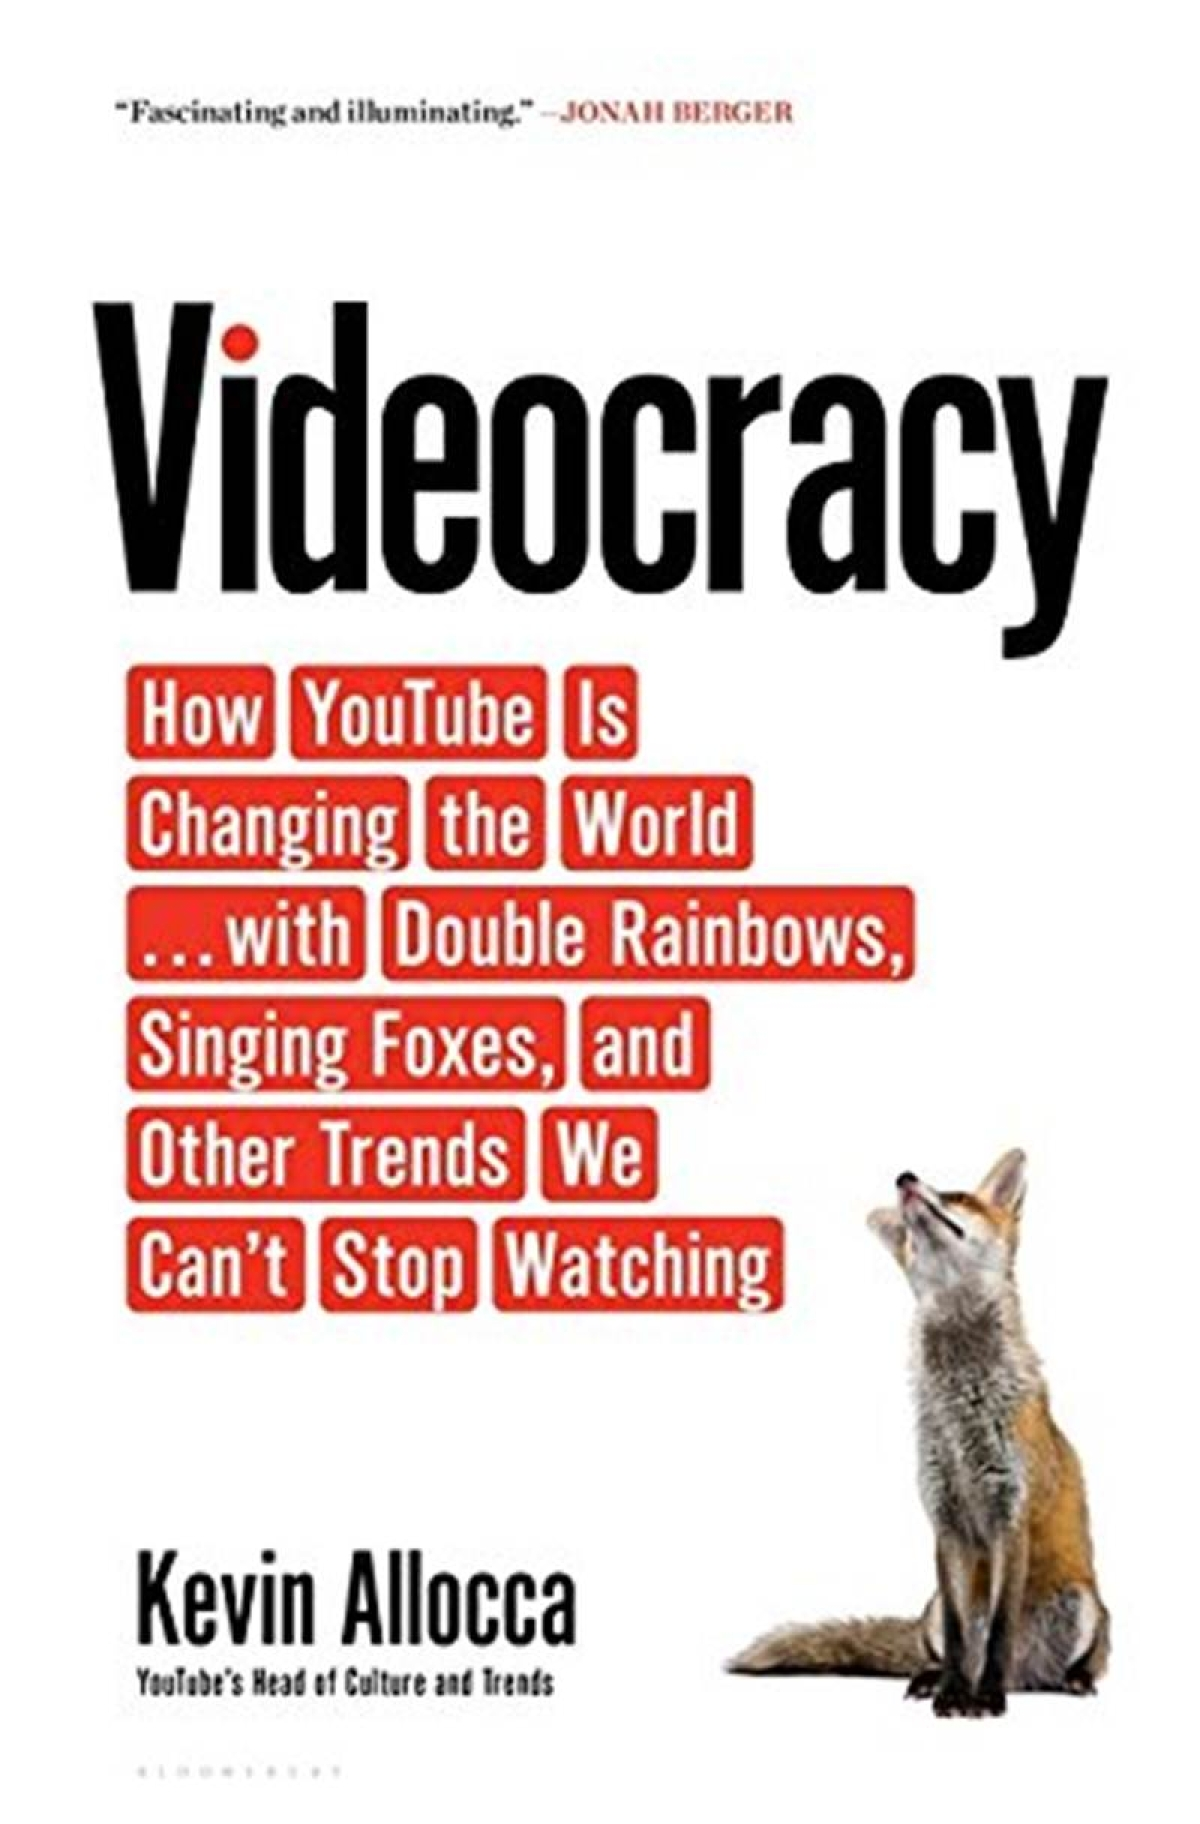 Videocracy…How YouTube is changing the World by Kevin Allocca: Review